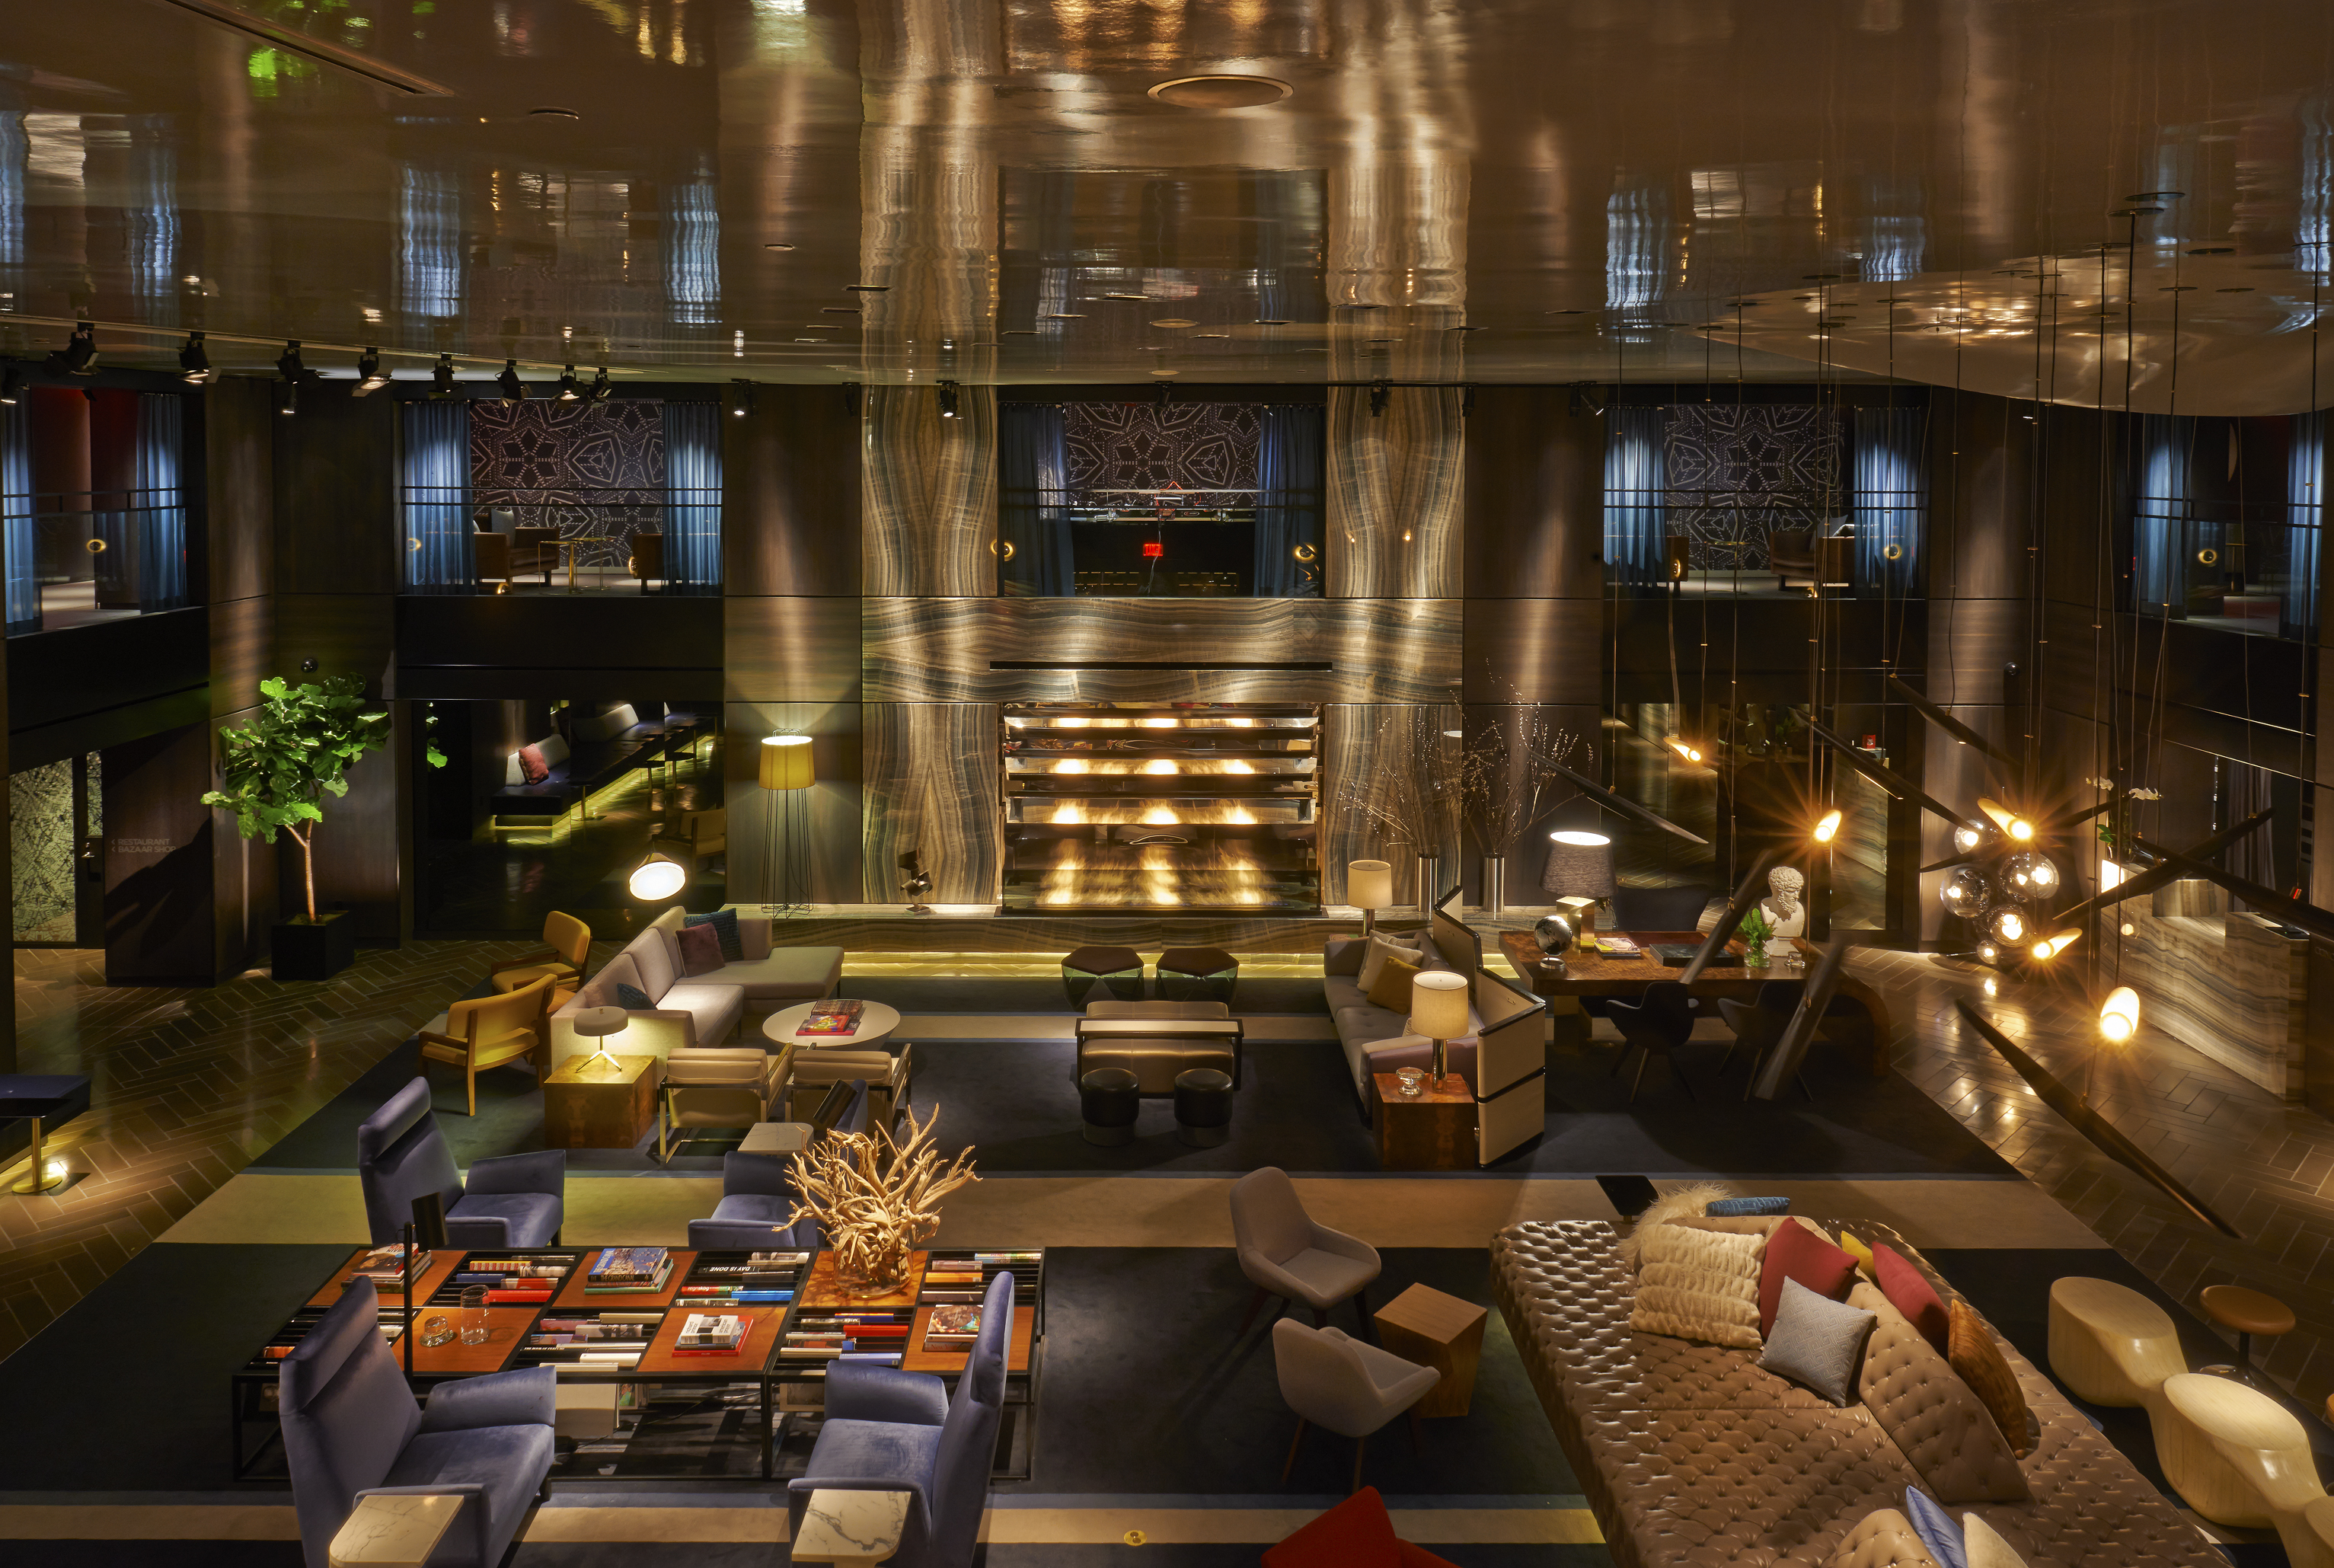 Luxury design ideas from paramount hotel in new york for Best boutique hotels nyc 2016